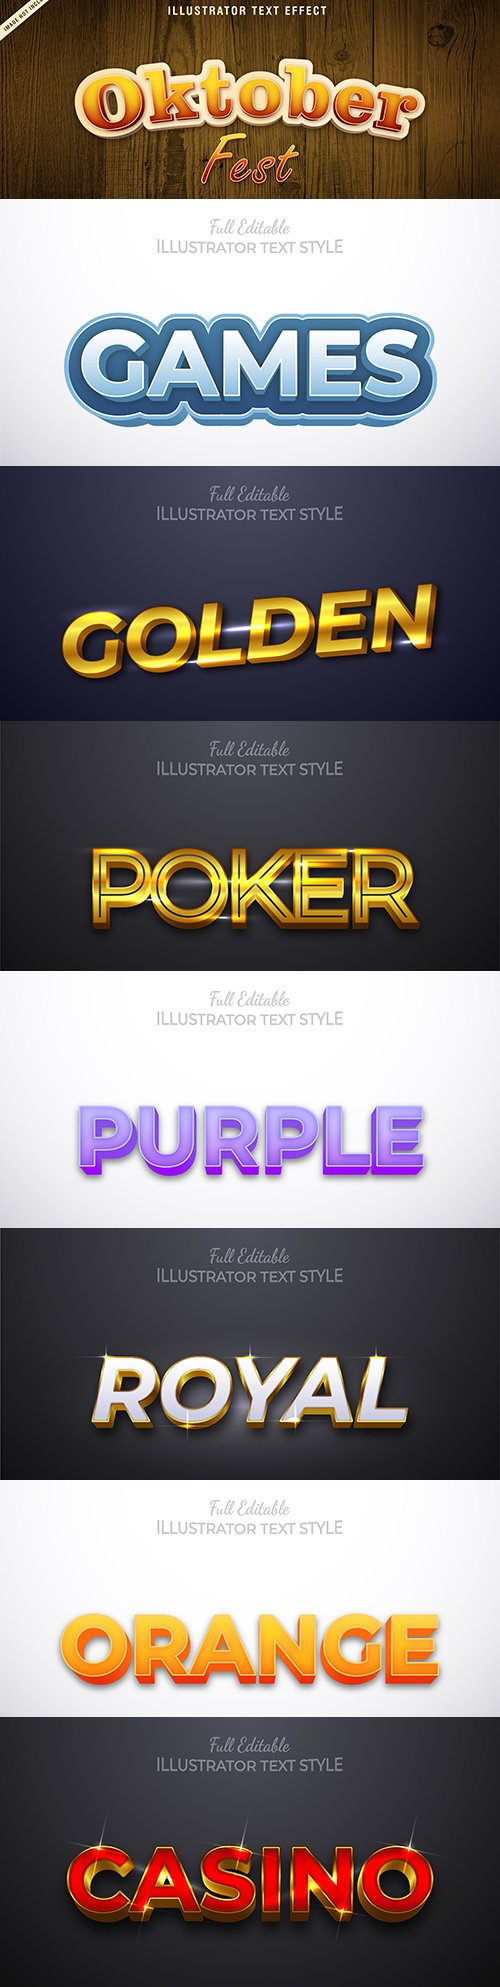 Editable font effect text collection illustration design 201